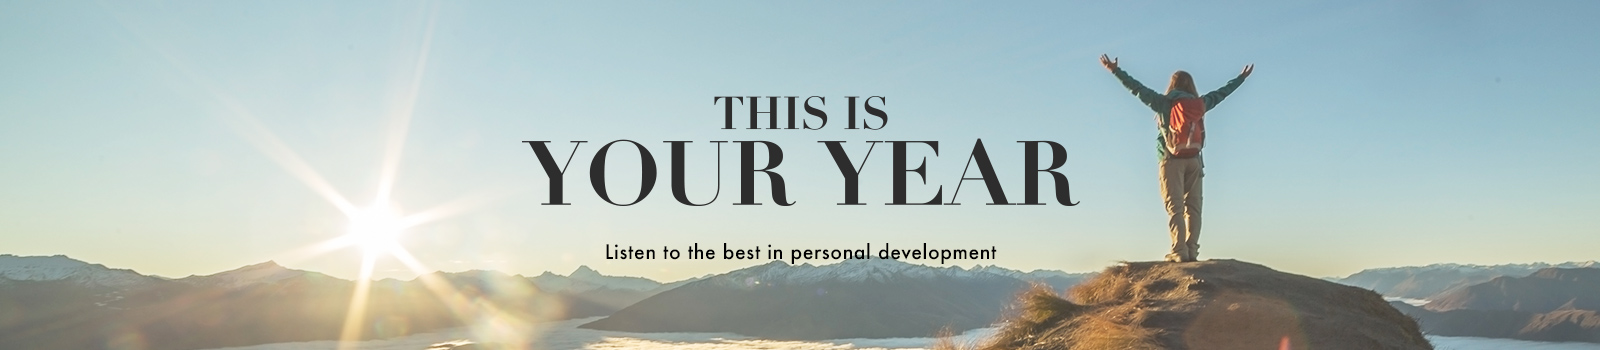 Listen to the best in health and personal development audiobooks